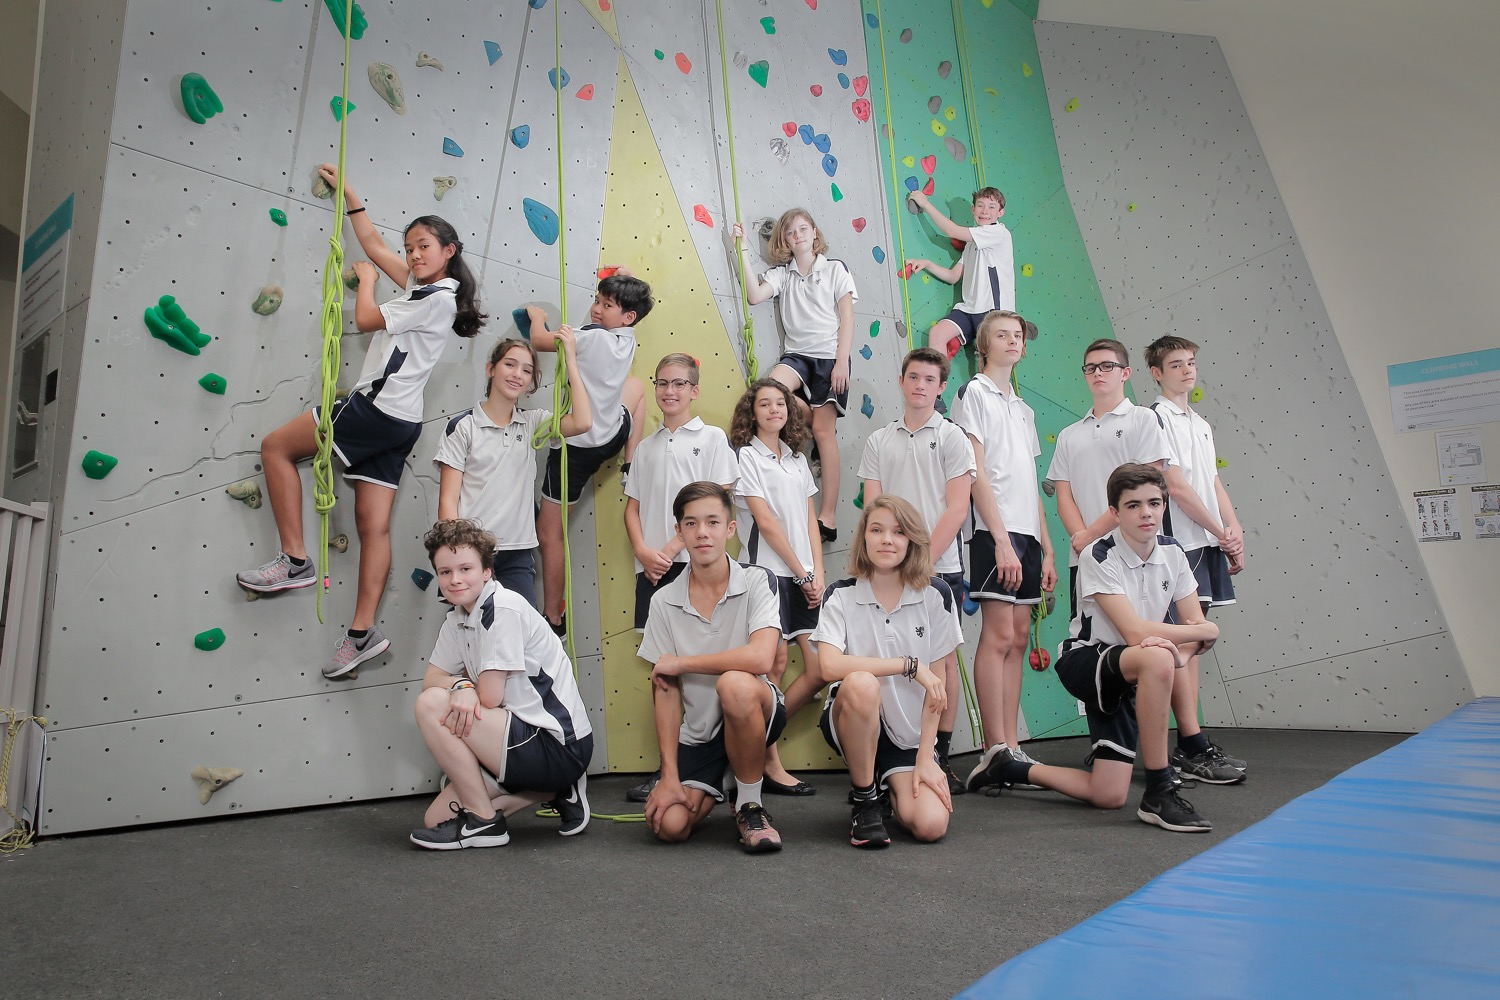 BSKL Sports Group Pose (Wall Climbing Team)